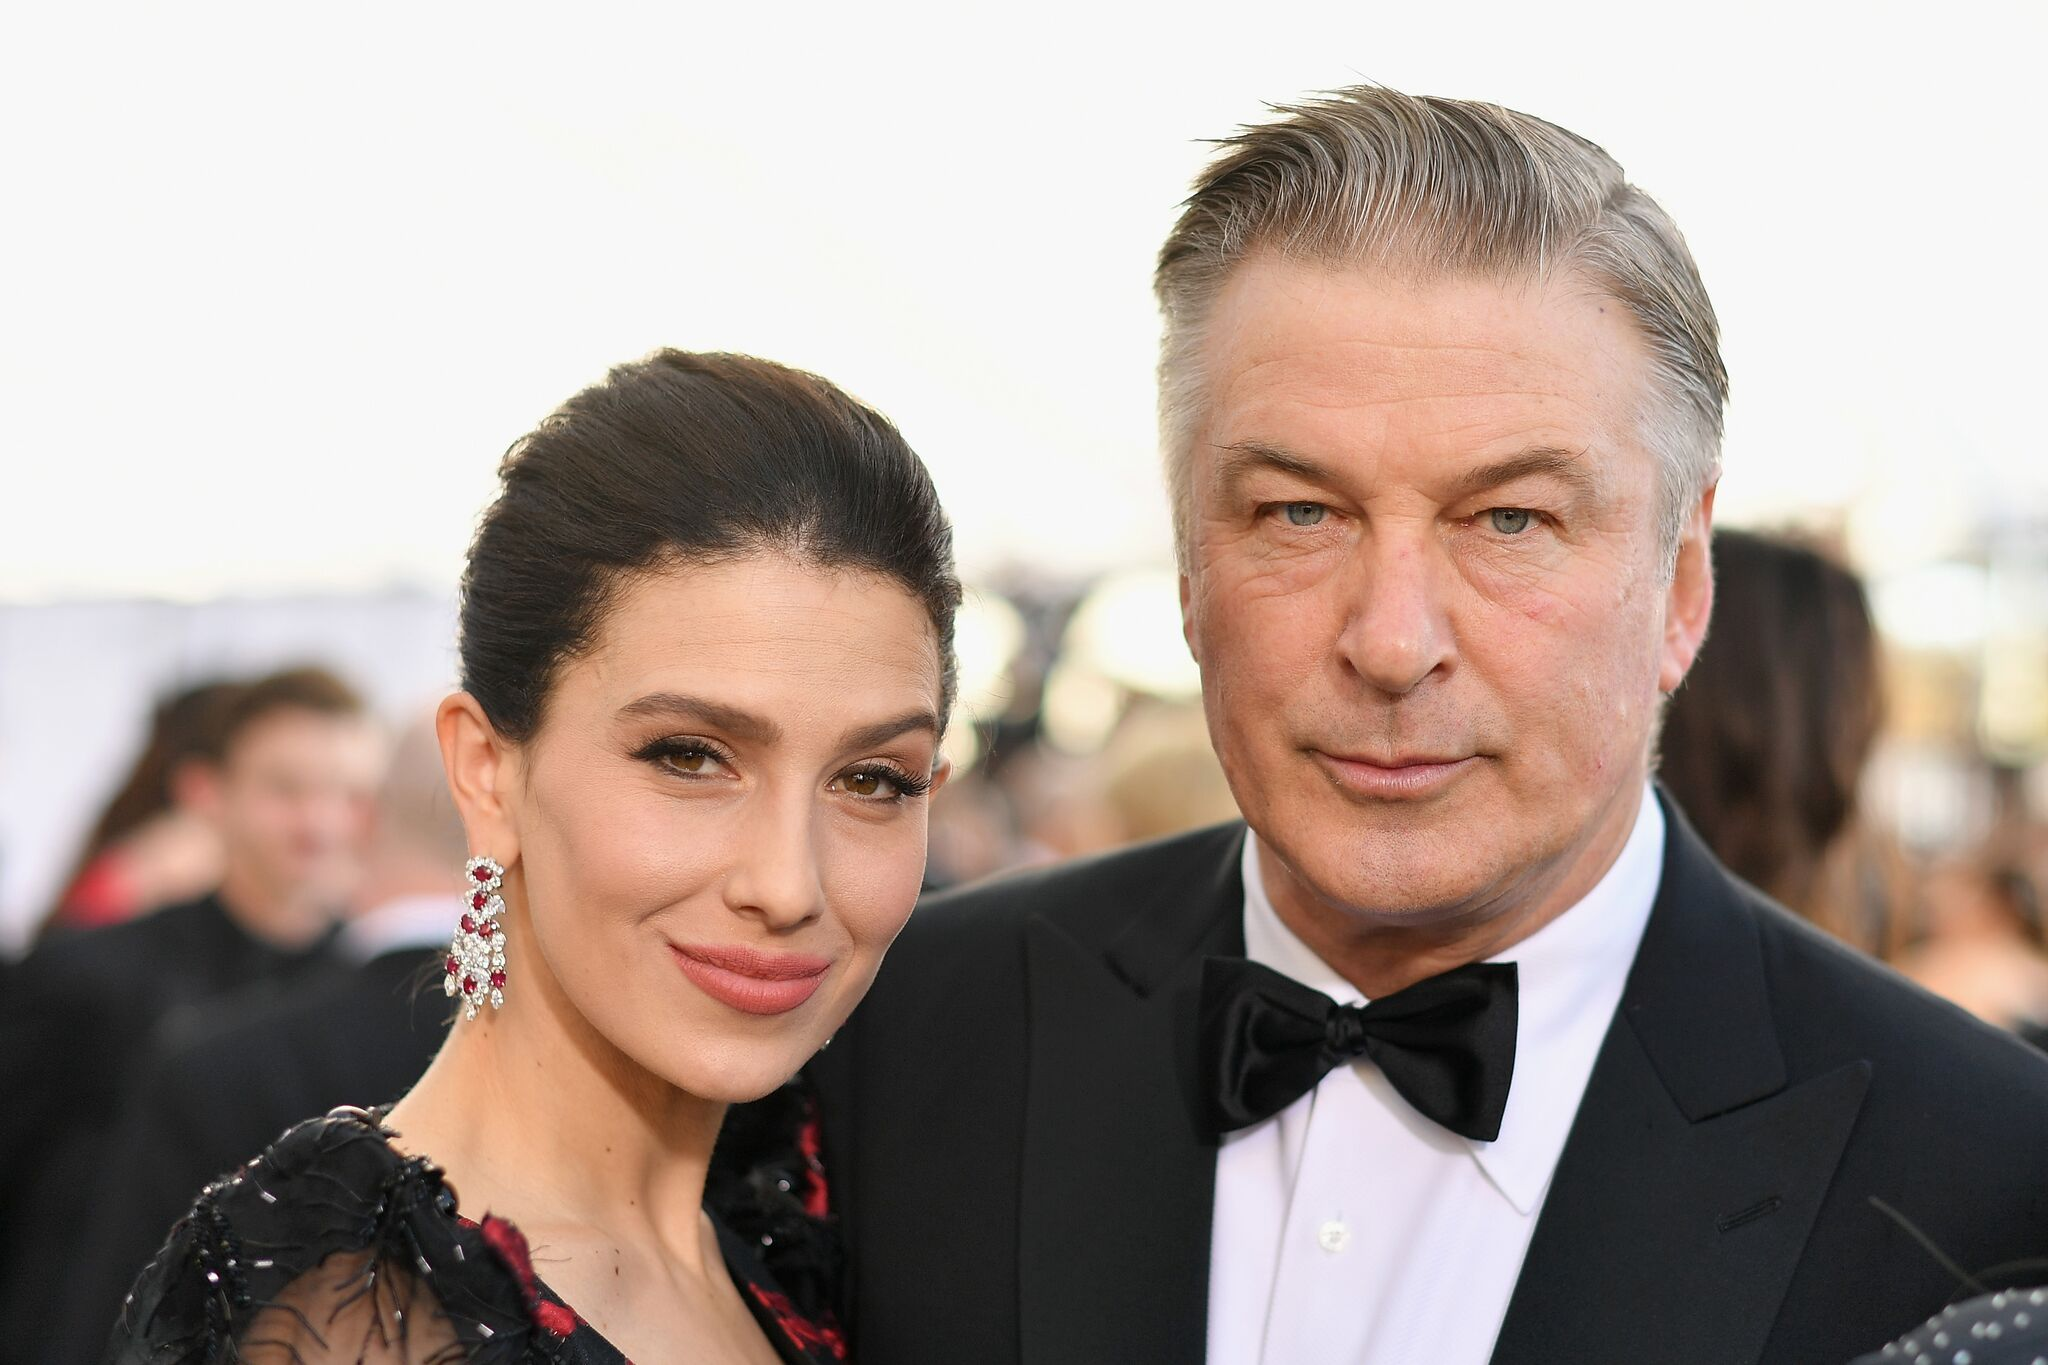 Hilaria Baldwin and Alec Baldwin attend the 25th Annual Screen ActorsGuild Awards at The Shrine Auditorium on January 27, 2019 in Los Angeles, California | Photo: Getty Images